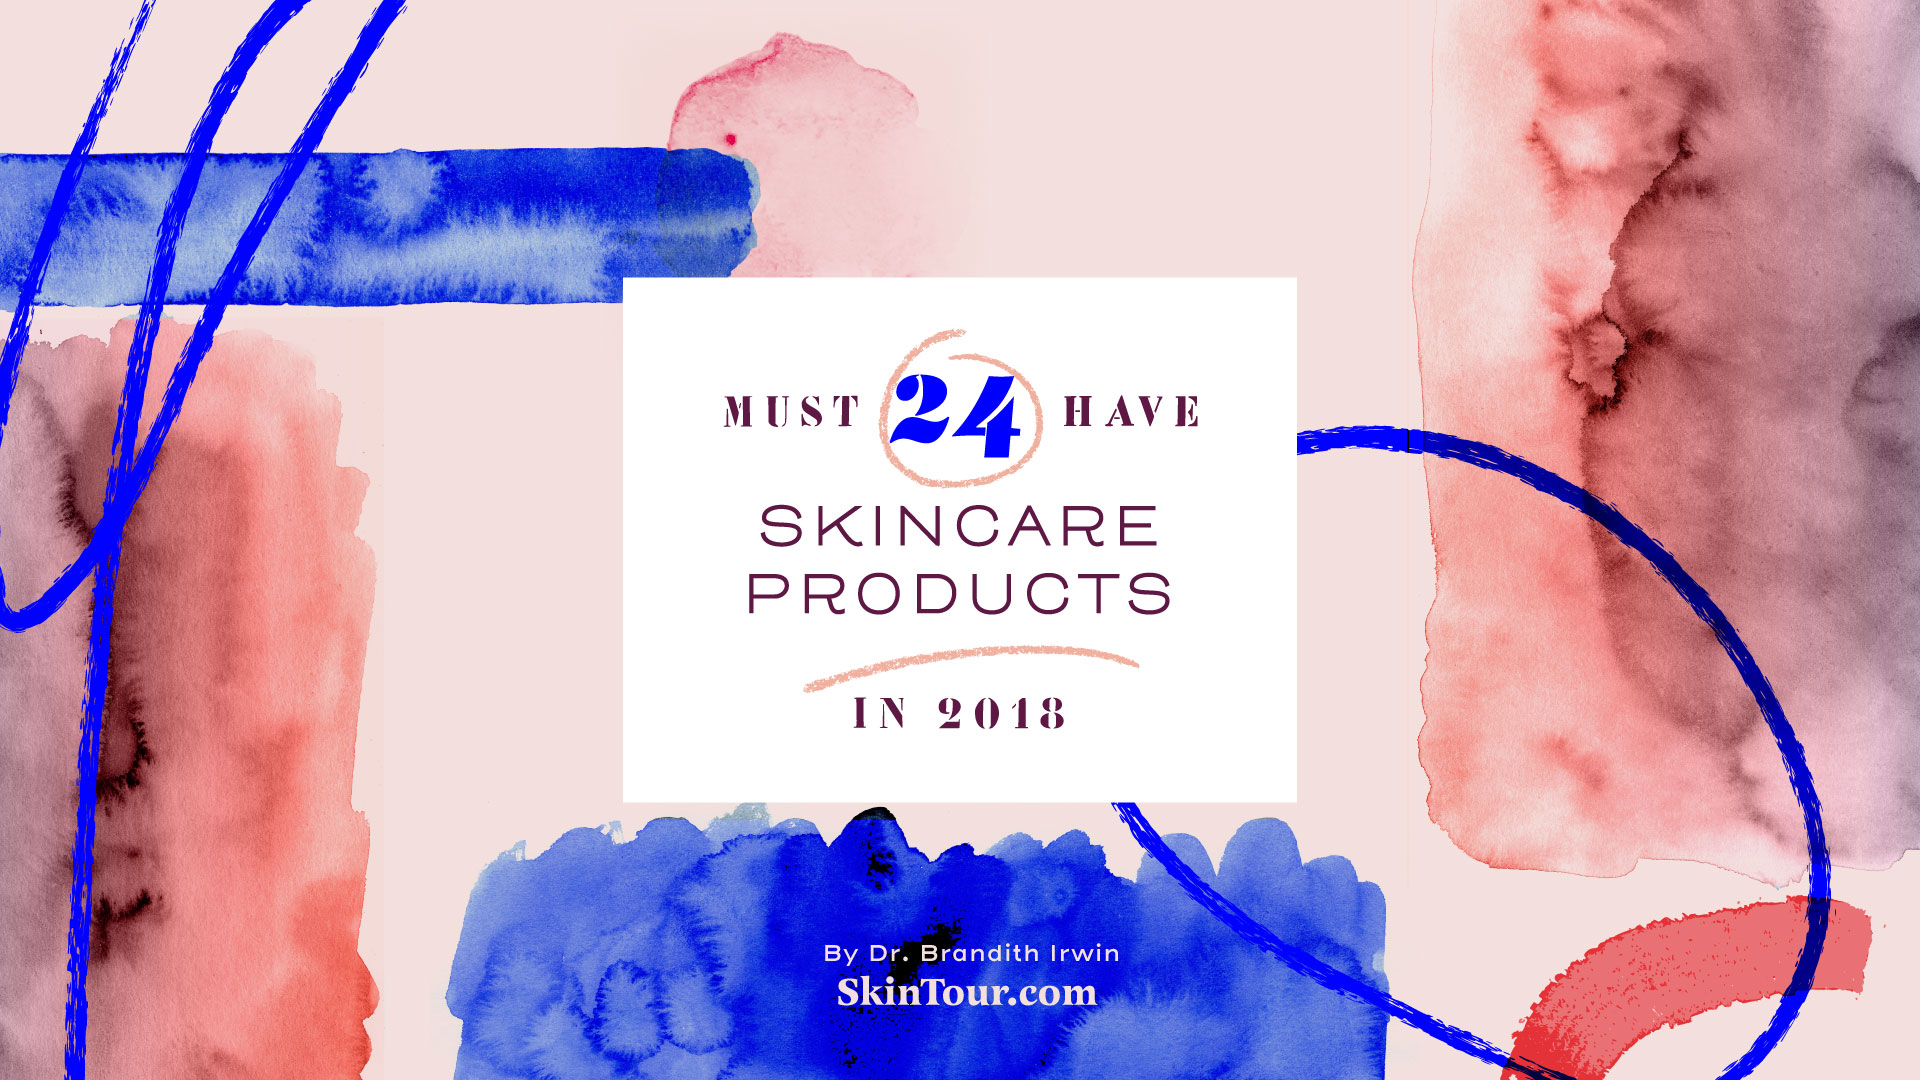 TOP 24 MUST HAVE SKINCARE PRODUCTS FOR 2018 | Skintour